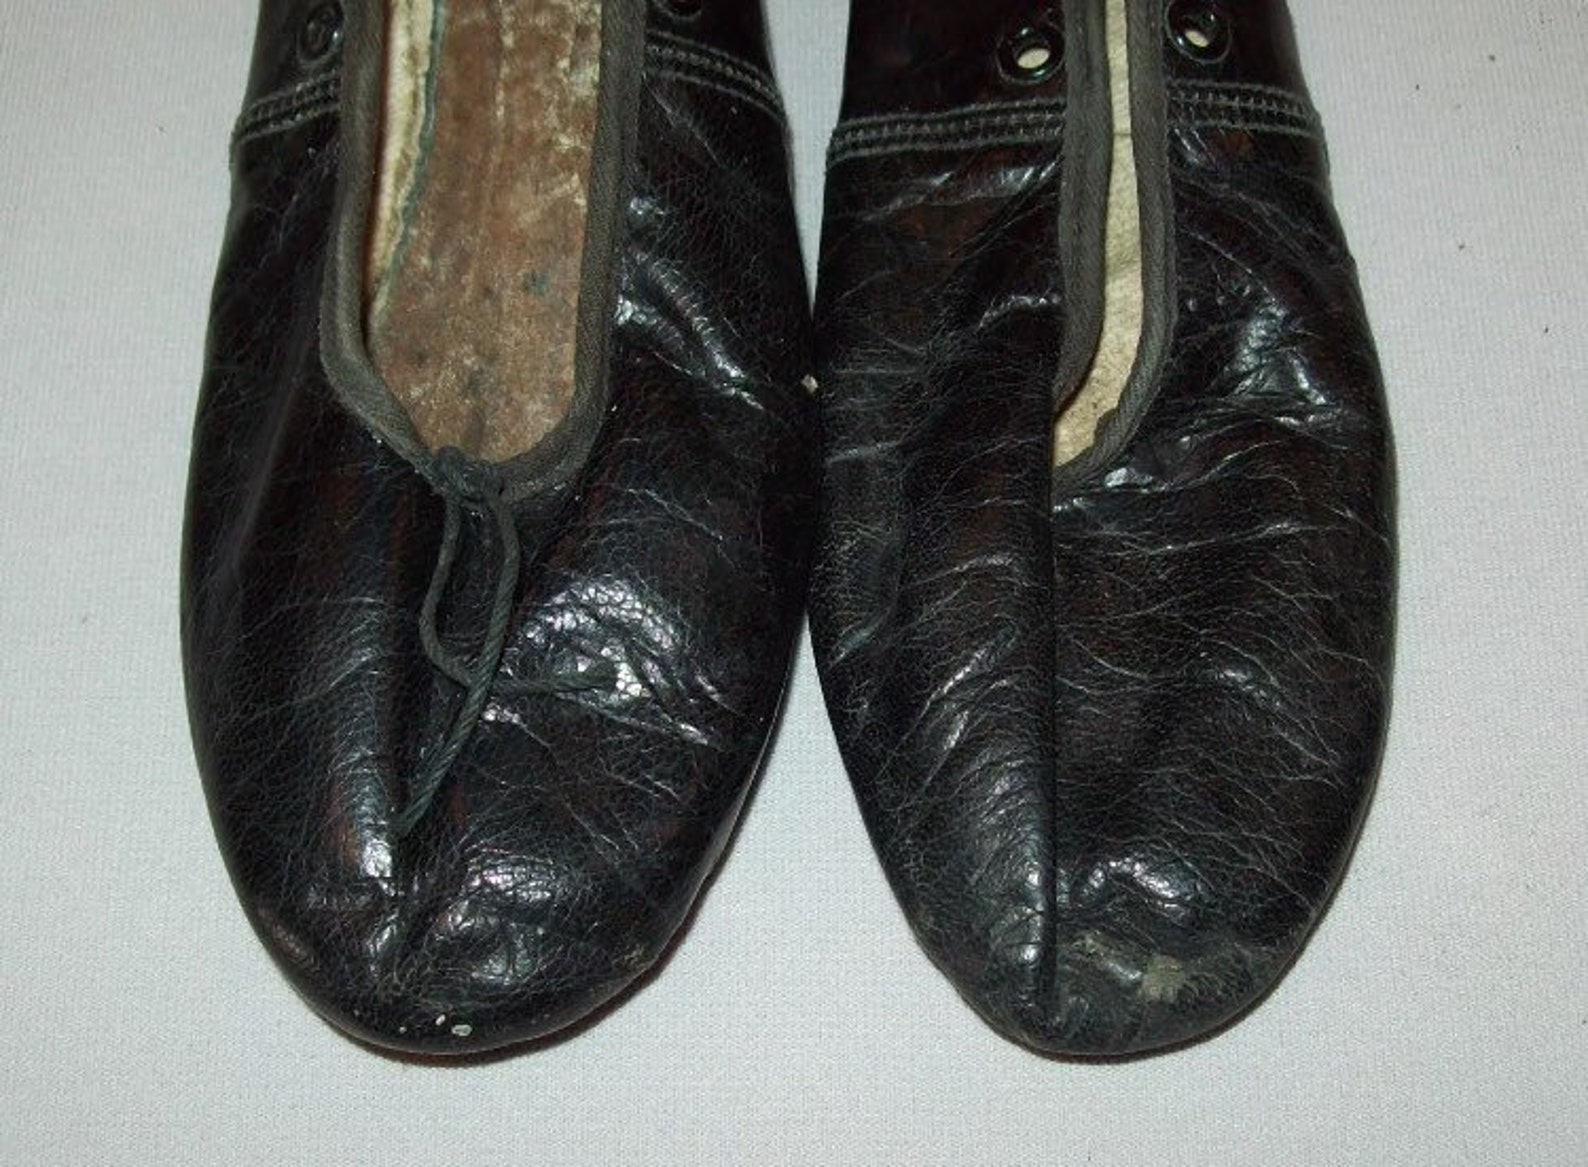 nice 19th c pair of mid 19th century leather ballet slippers or shoes